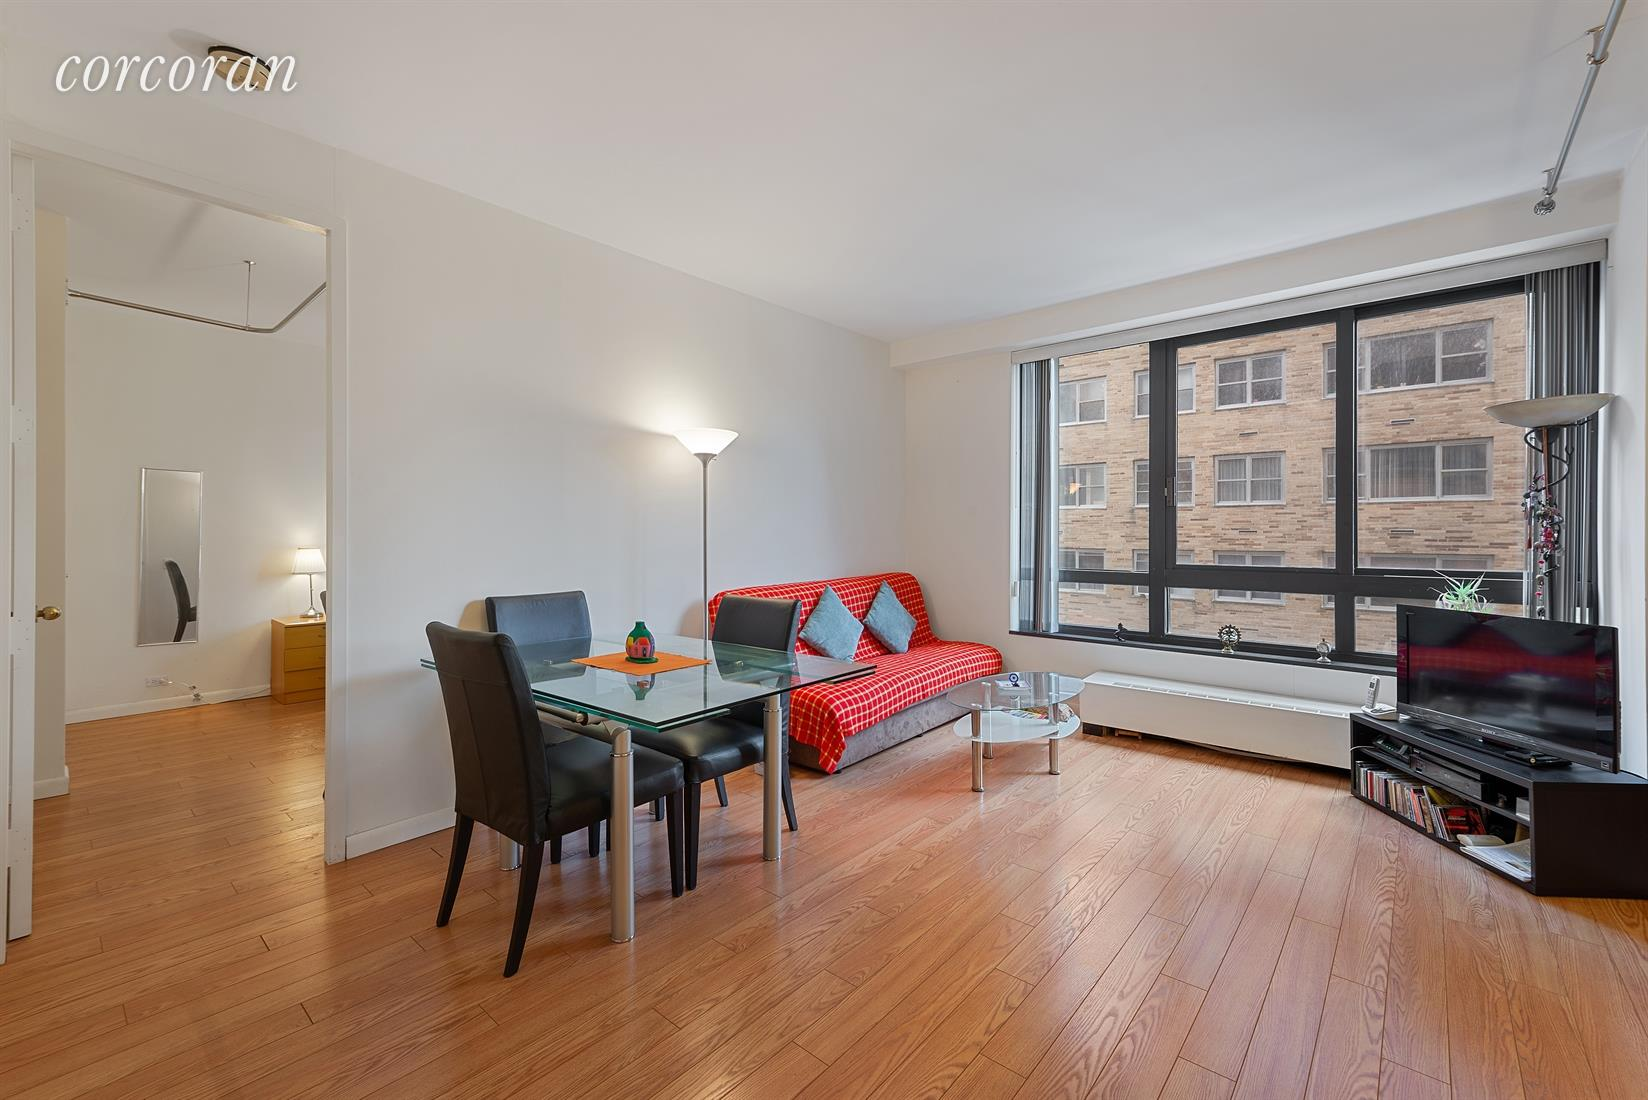 Fantastic one bedroom, one bathroom apartment available for sale at 100 United Nations Plaza. This quiet, spacious and functional unit has a large living room with a separate dining alcove, which could also be used as an office or sleeping area, with oversized north-facing windows. The galley kitchen has black and stainless steel appliances including a dishwasher and a new refrigerator. The large bedroom comfortably accommodates a king size bed and has an en suite marble bathroom with a Jacuzzi tub. Additional features of this unit include new hardwood floors, 3 extra-large closets and 9 ceilings.  Tenant in place through June 2021. Located on East 48th Street and First Avenue, 100 United Nations Plaza is a white-glove, full service condominium in Manhattan's Turtle Bay neighborhood. Greeting residents with beautifully landscaped gardens and waterfalls, this impeccably run building offers a 24-hour doorman, valet and concierge service, on-site management office, renovated lobby and resident's lounge, common laundry room, fitness center and direct access to a 24-hour attended parking garage. Conveniently located to transportation and many great shops and restaurants. Pet friendly (1 dog, maximum 50 lbs.) Showing by appointment only.